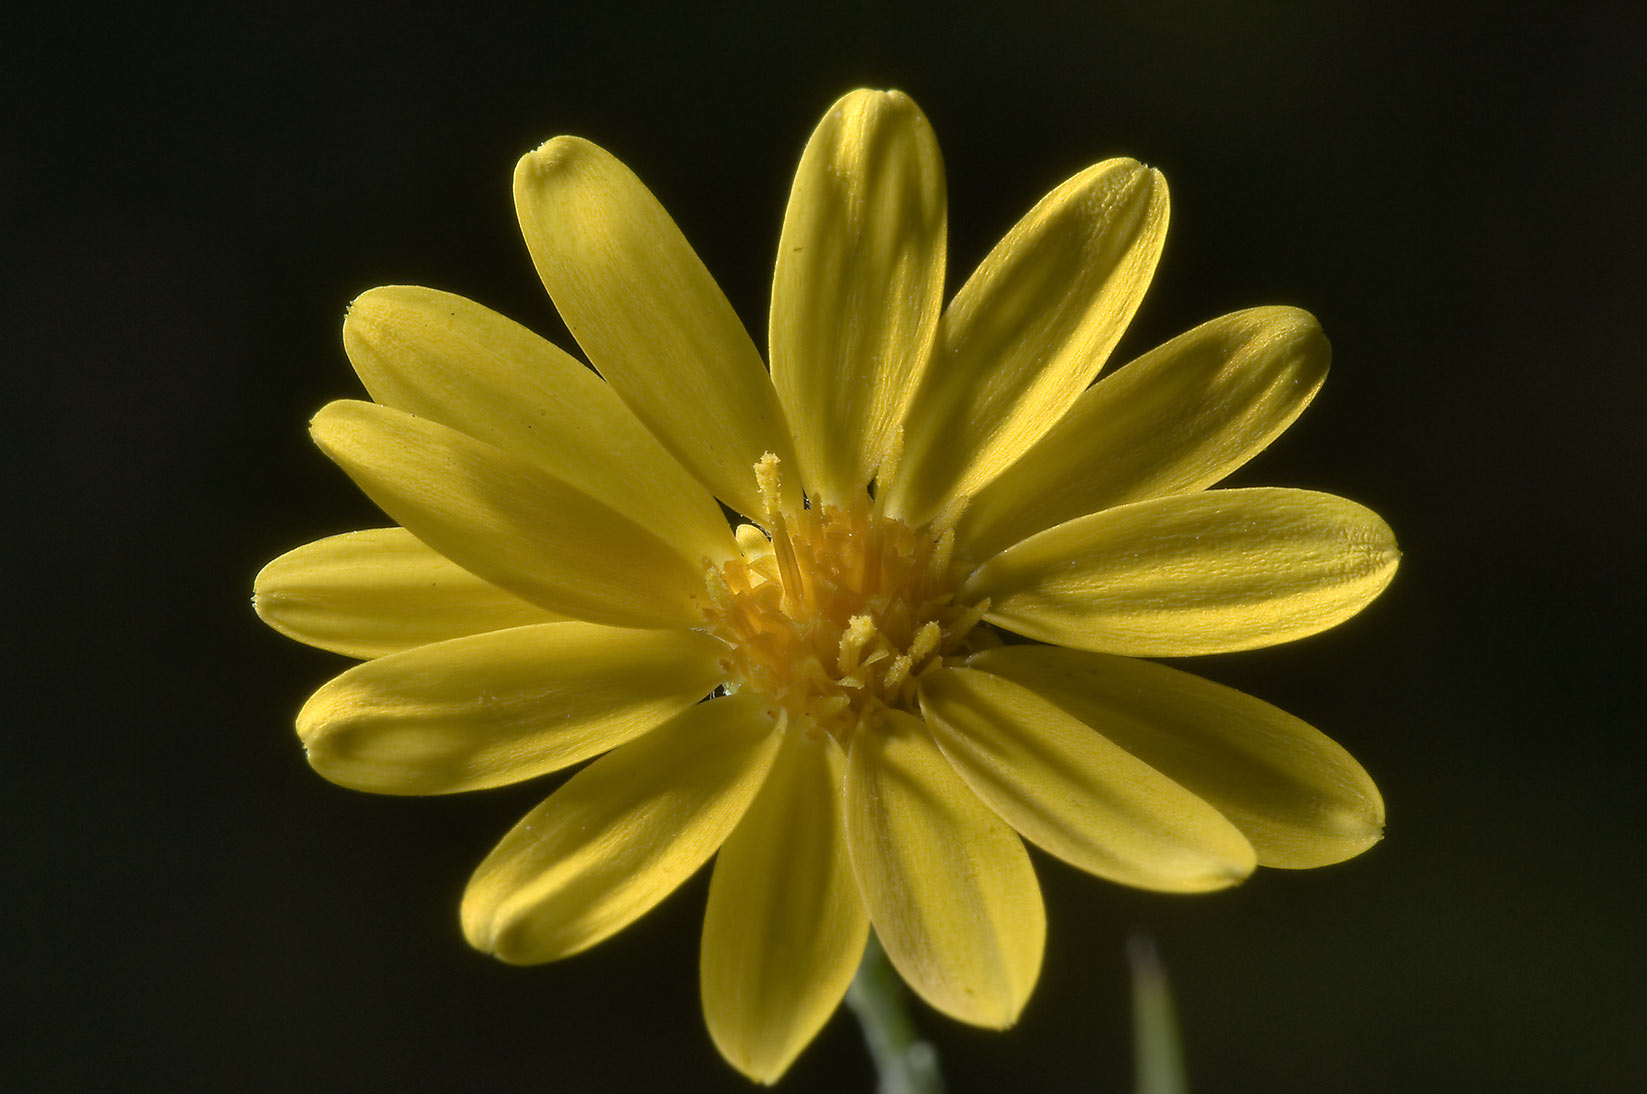 Yellow flower of aster family in Little Lake...National Forest. Richards, Texas